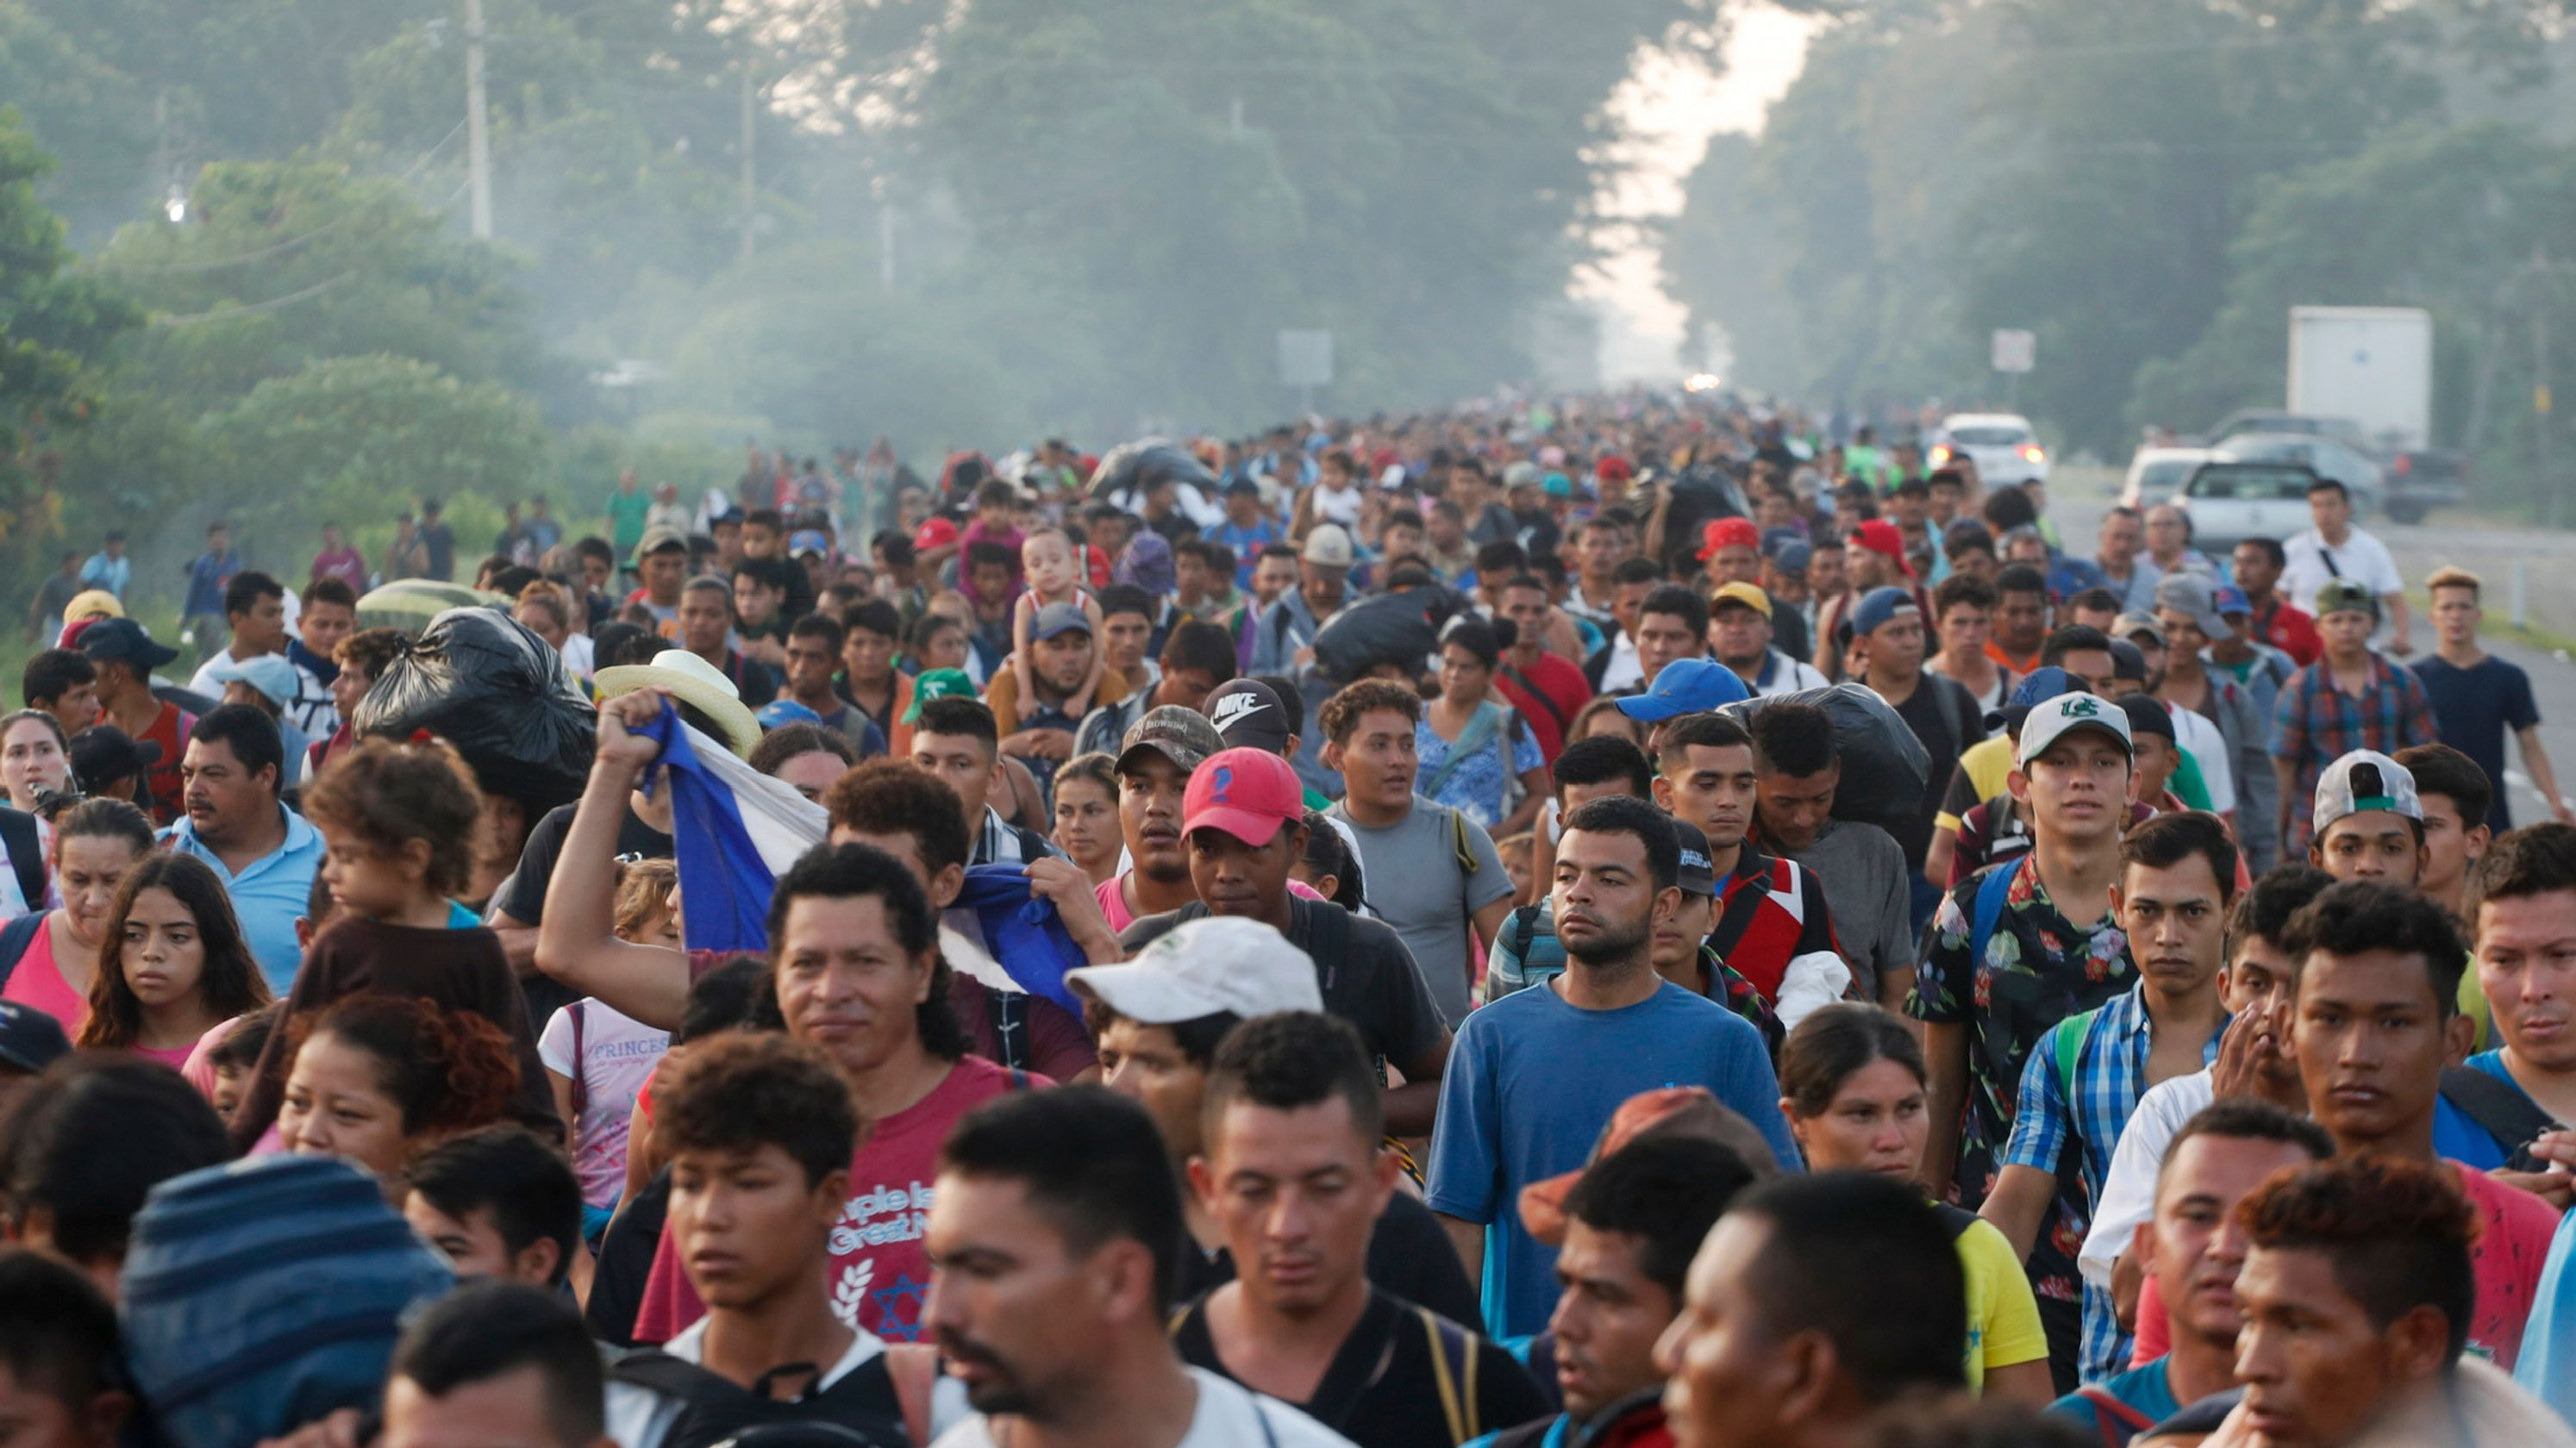 Honduras Central American Migrant Caravan Forcefully Enter United States